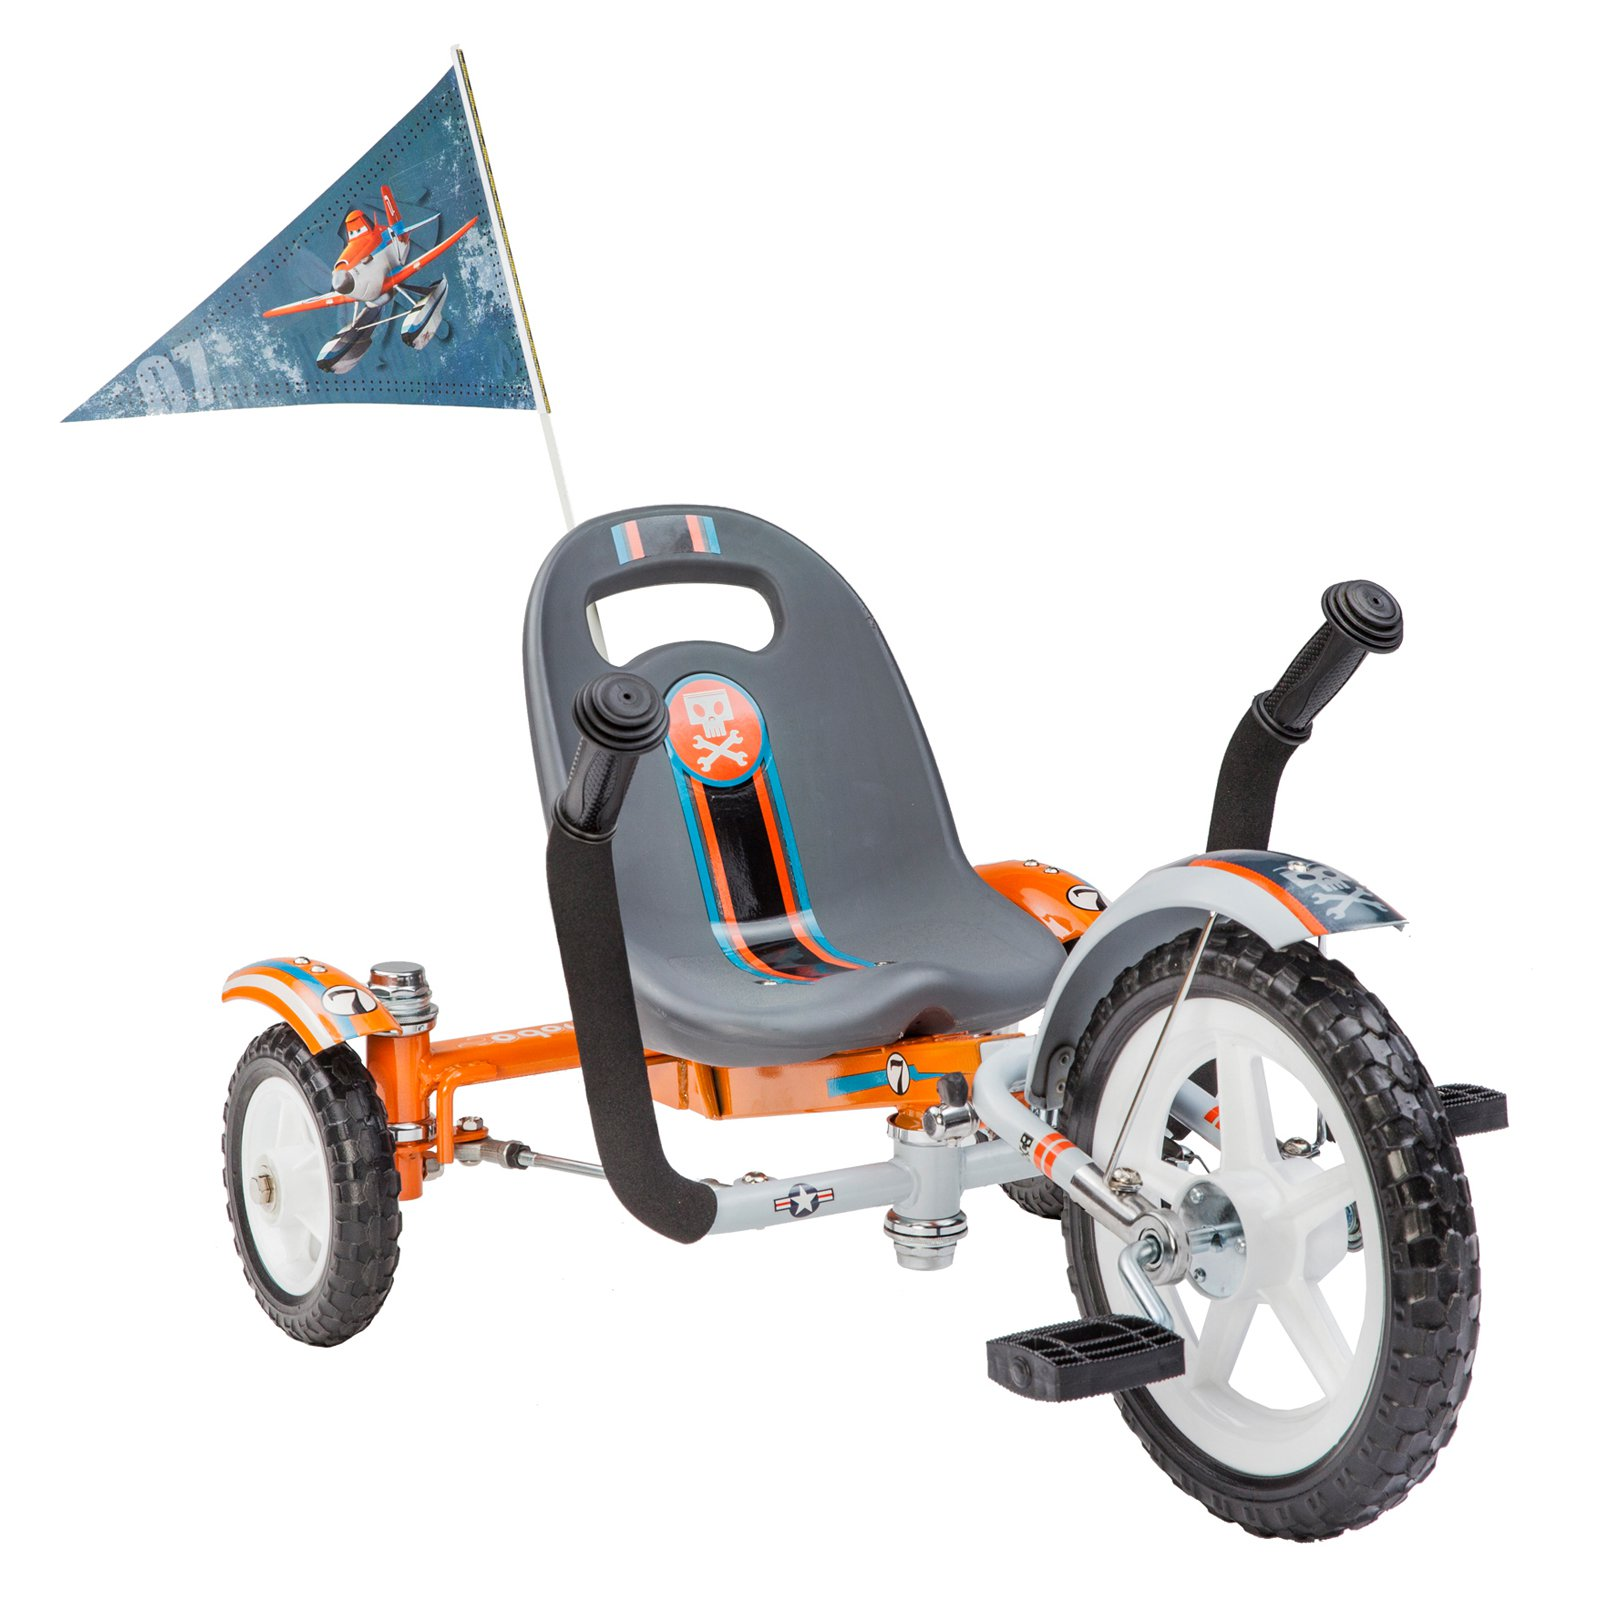 Mobo Tot Disney Planes Dusty: A Toddler's Ergonomic 3-Wheeled Cruiser